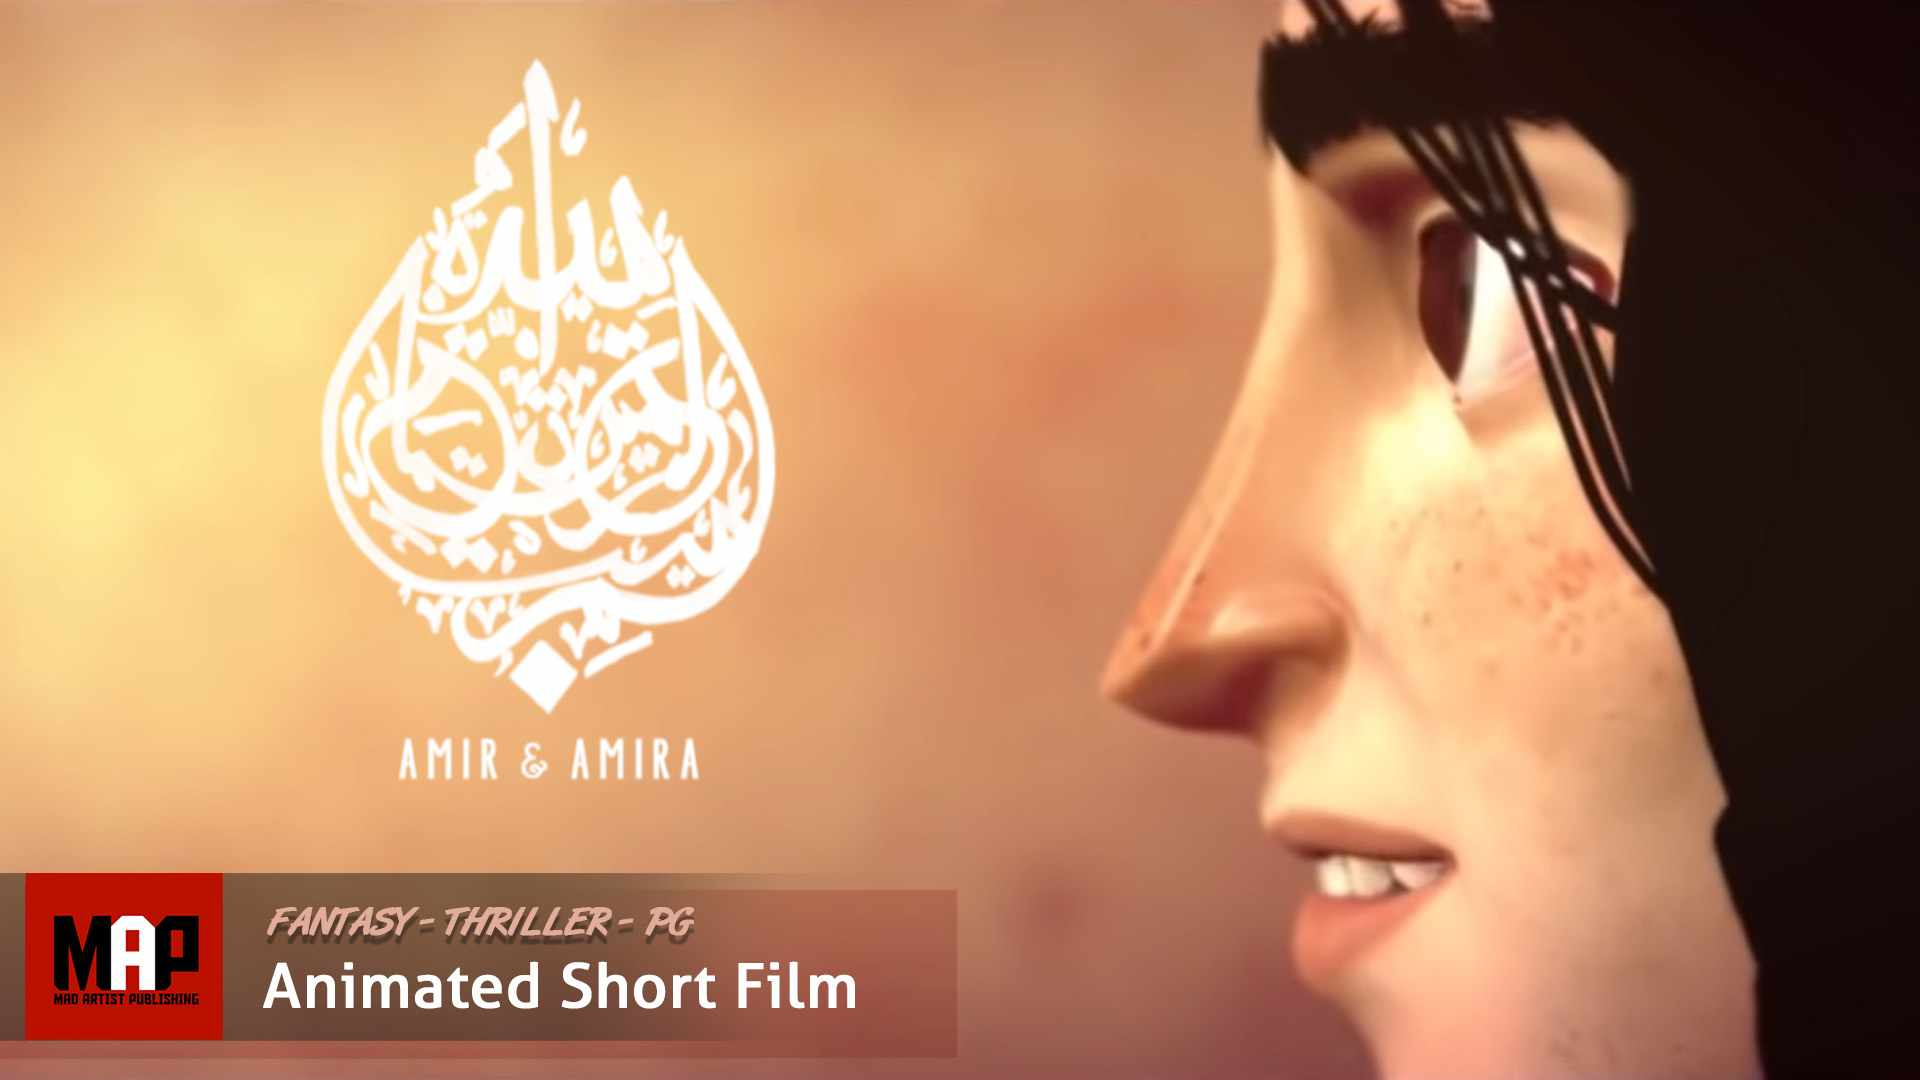 Cultural CGI 3D Animated Short Film ** AMIR & AMIRA ** Award Winning Animation by ESMA